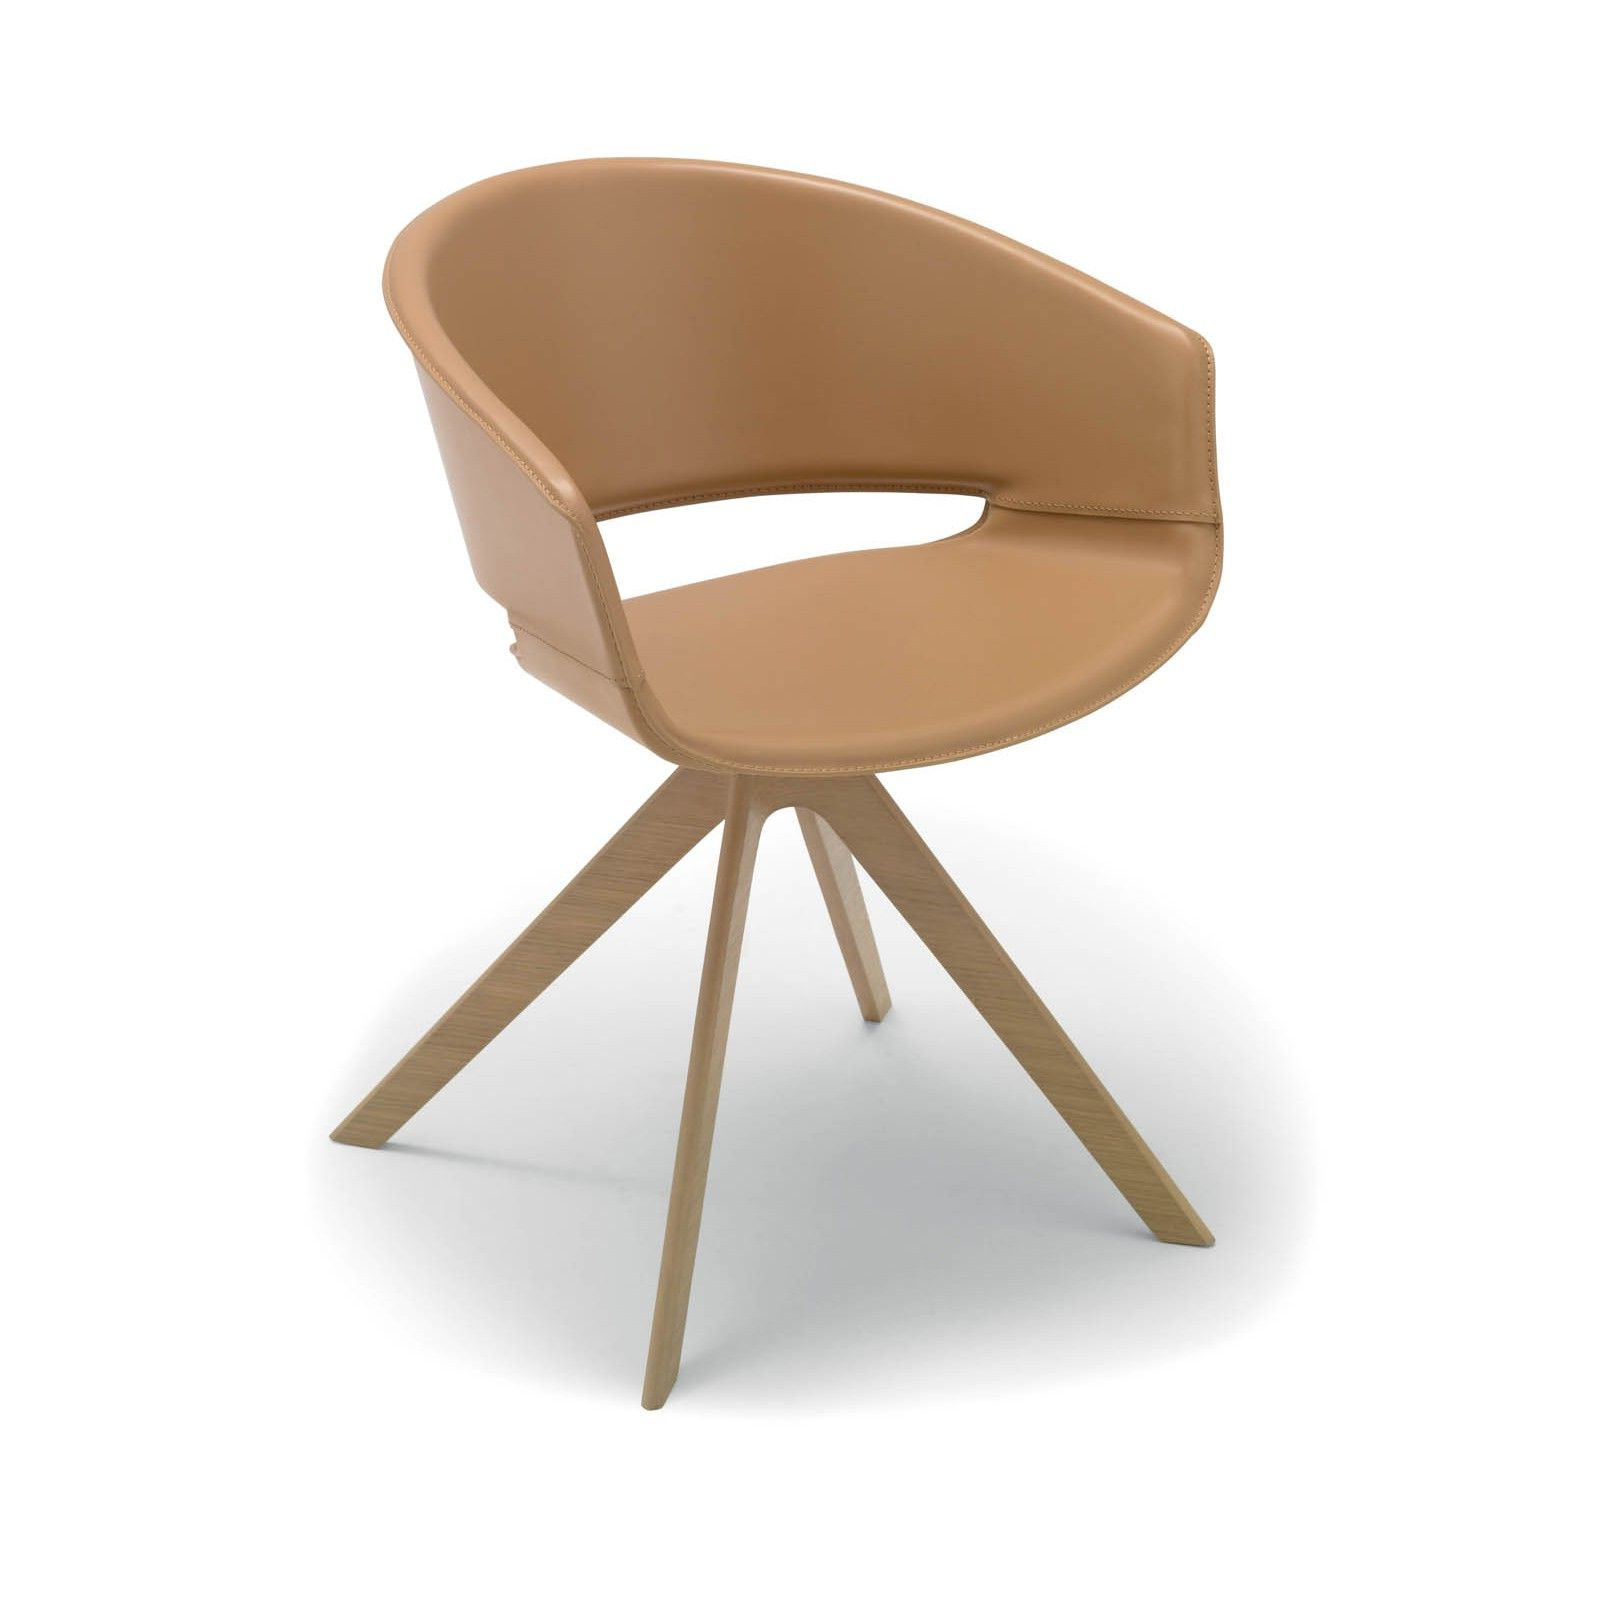 Andreu World, Ronda, Lievore Altherr Molina, Designer With Regard To Famous Ronda Barrel Chairs (View 13 of 20)